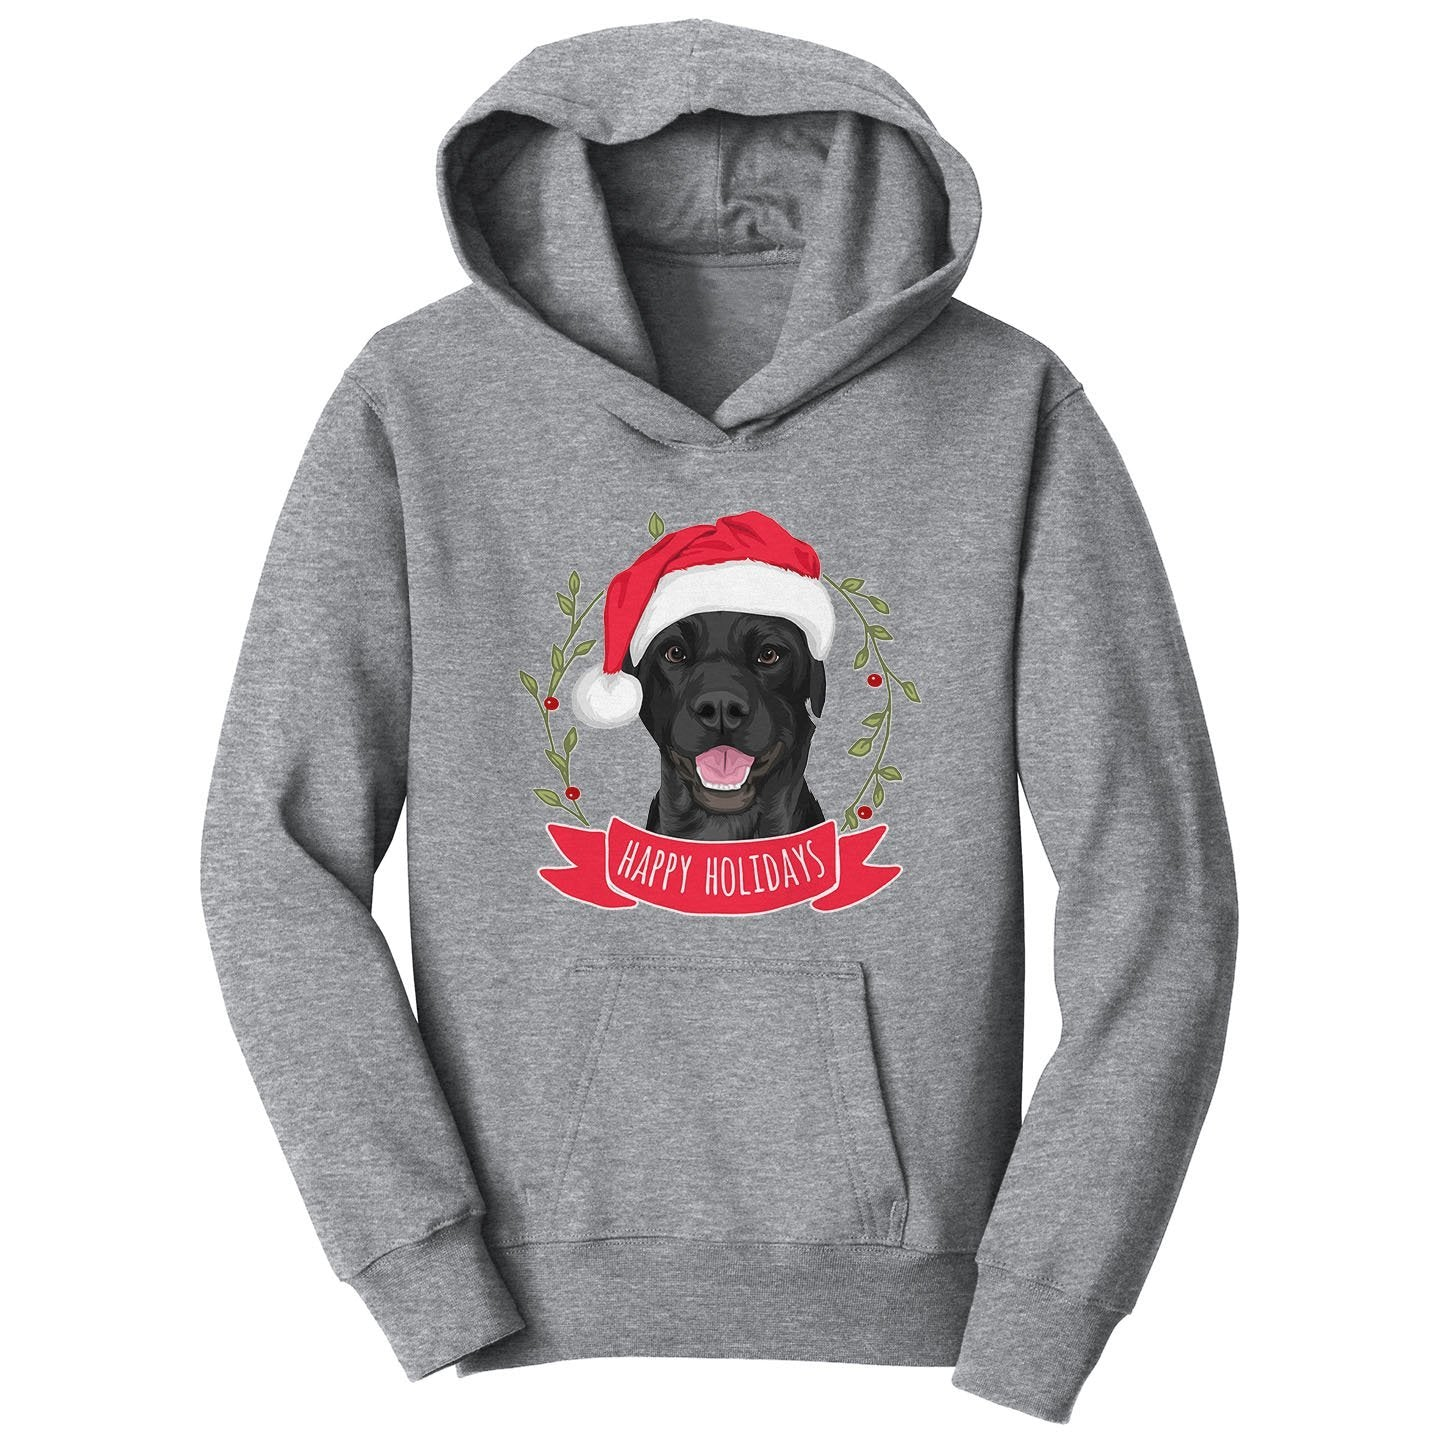 Happy Holidays Lab - Kids' Unisex Hoodie Sweatshirt